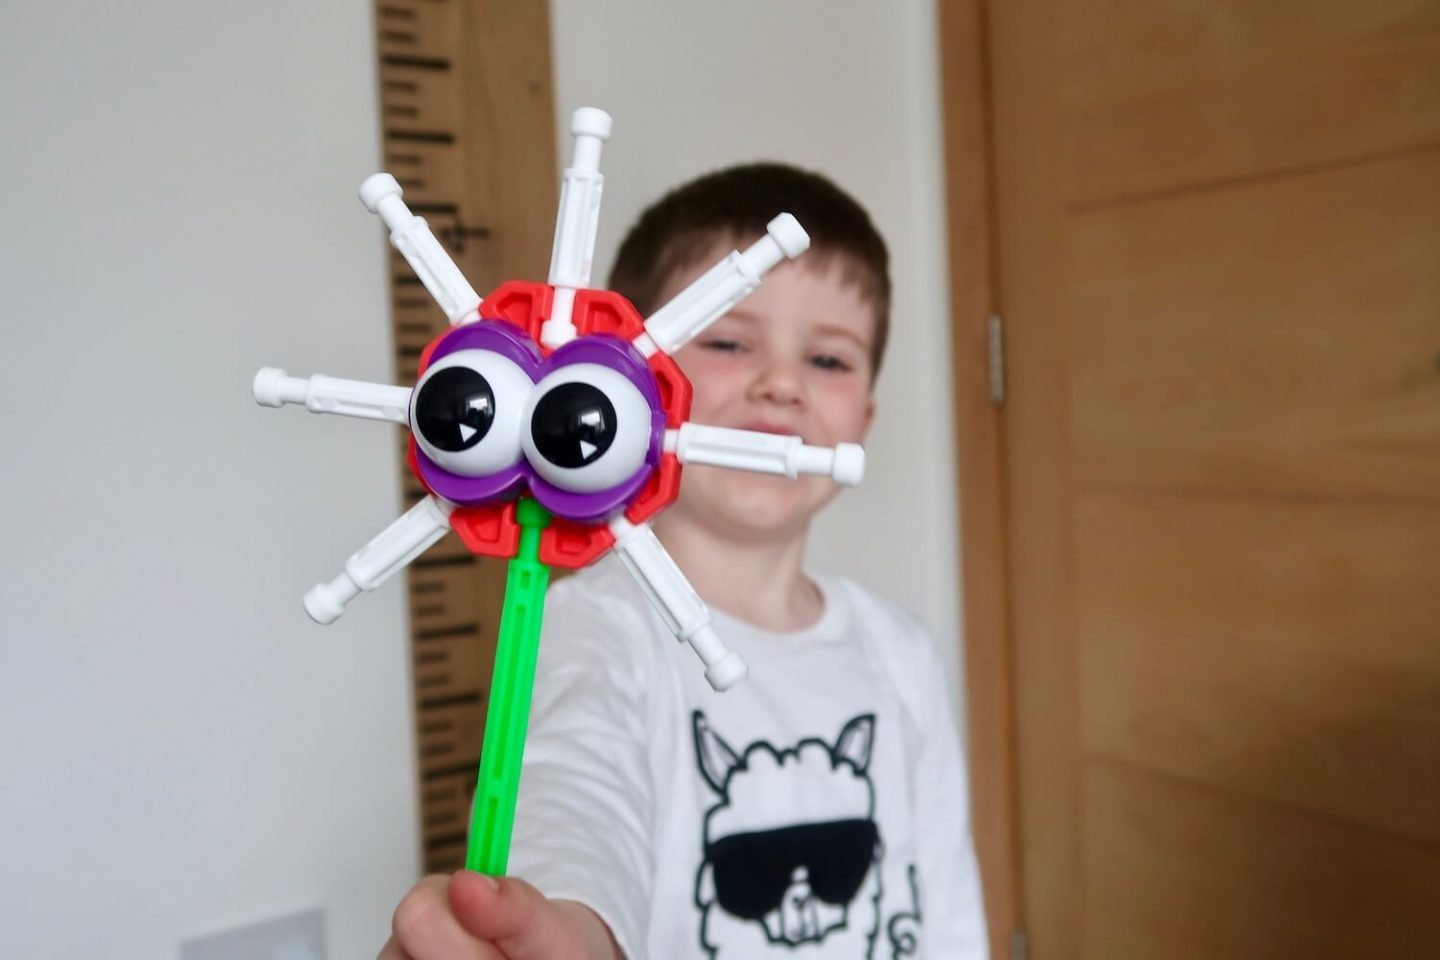 A child holding out a K'Nex monster